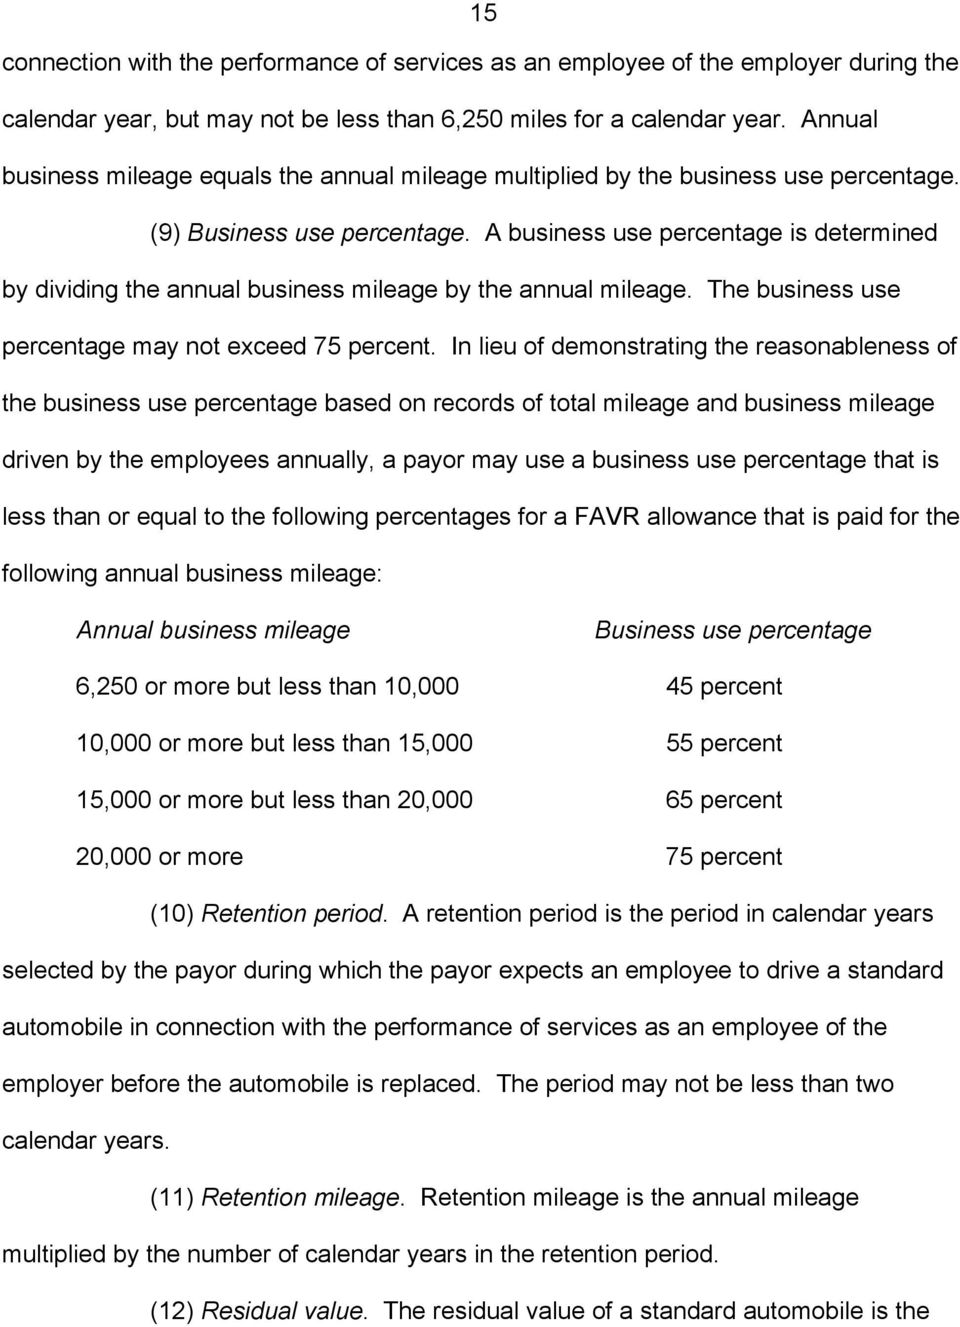 A business use percentage is determined by dividing the annual business mileage by the annual mileage. The business use percentage may not exceed 75 percent.